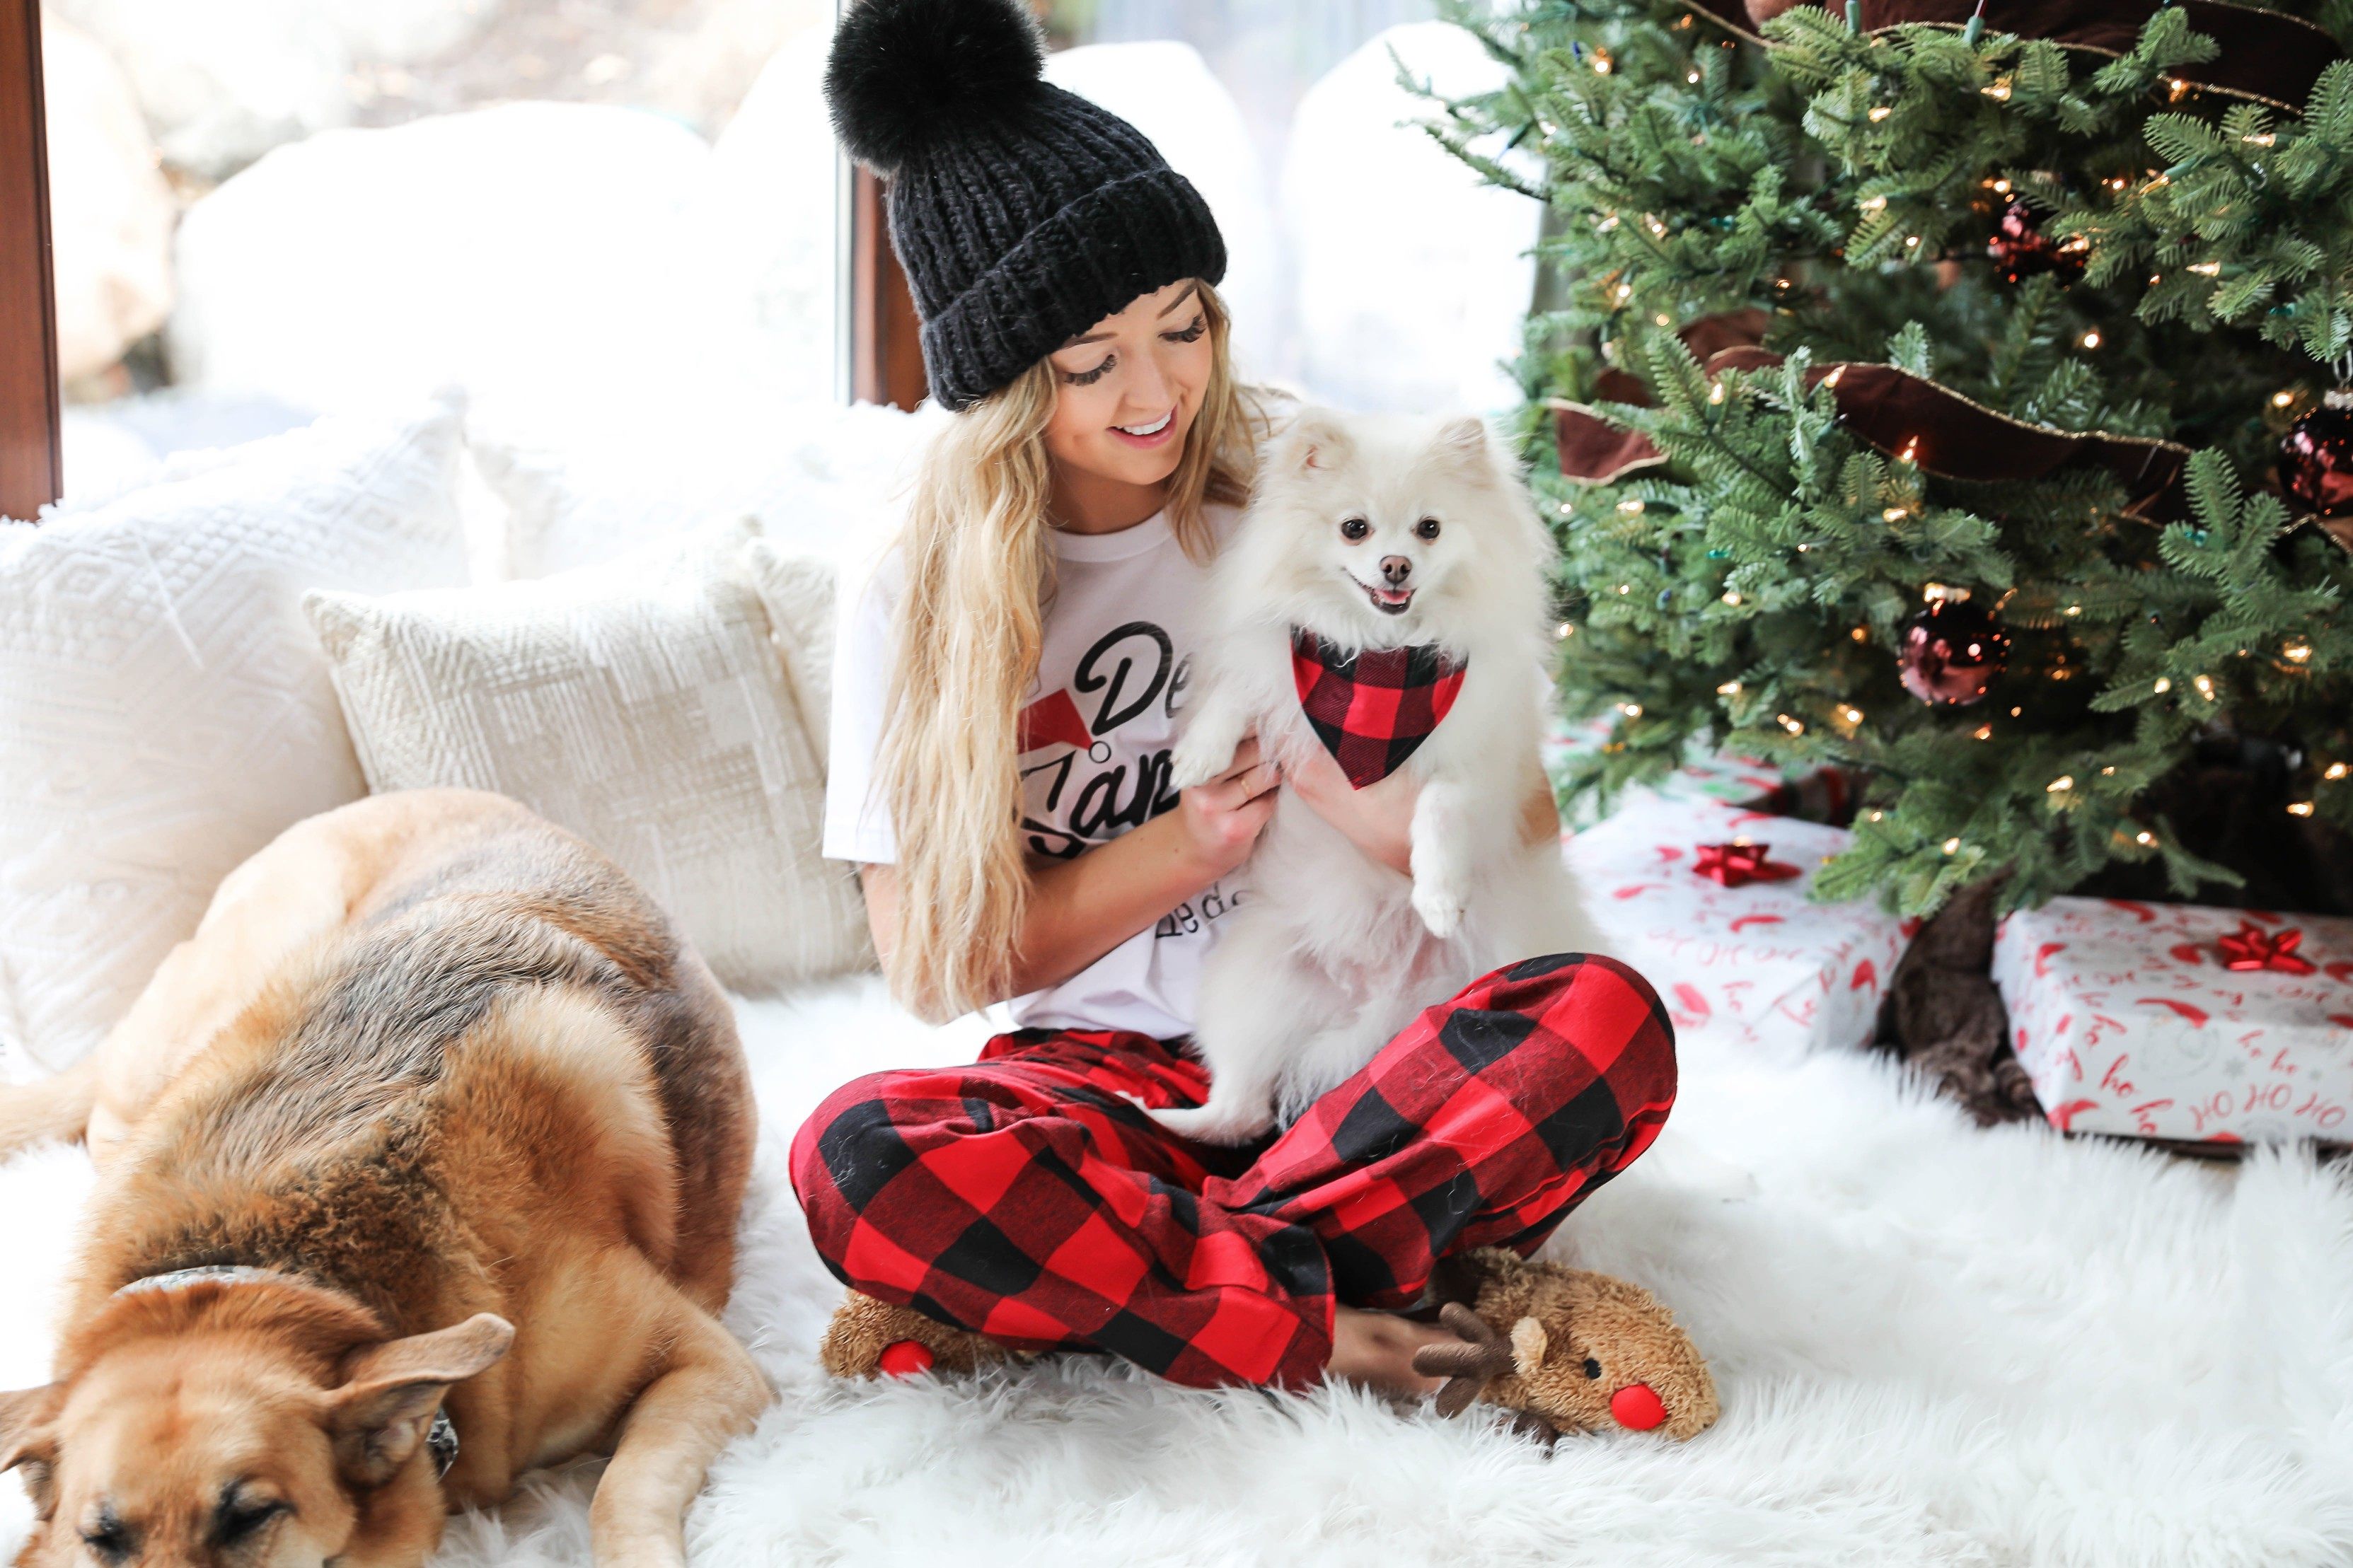 Matching pajamas with my puppy! My dog and I wear matching chrismas pjs every year! This is my puppy, beau, the pomeranian! Cute Christmas photoshoot on fashion blog daily dose of charm by lauren lindmark